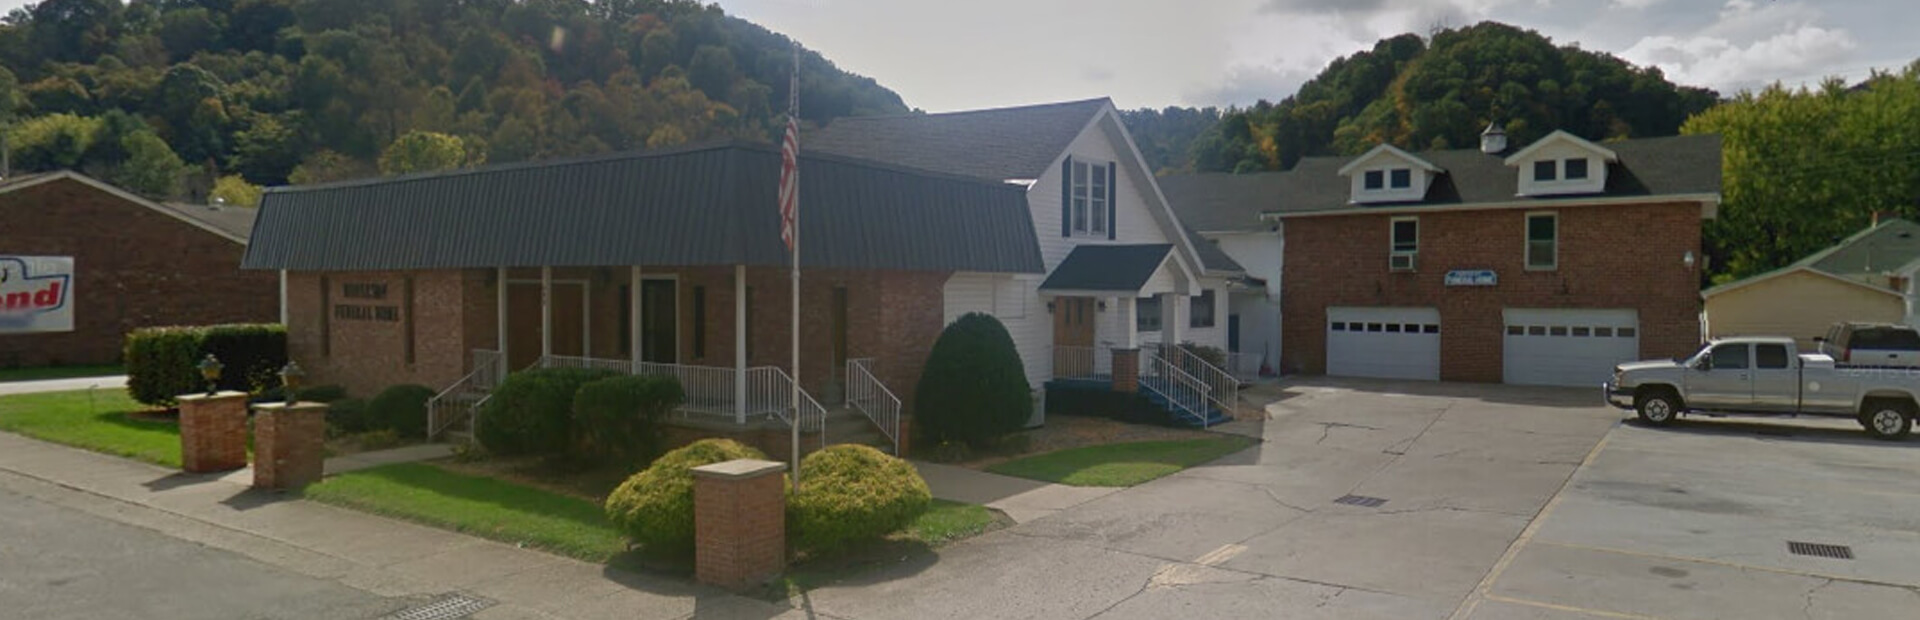 Roberson Funeral Home in South Shore, KY